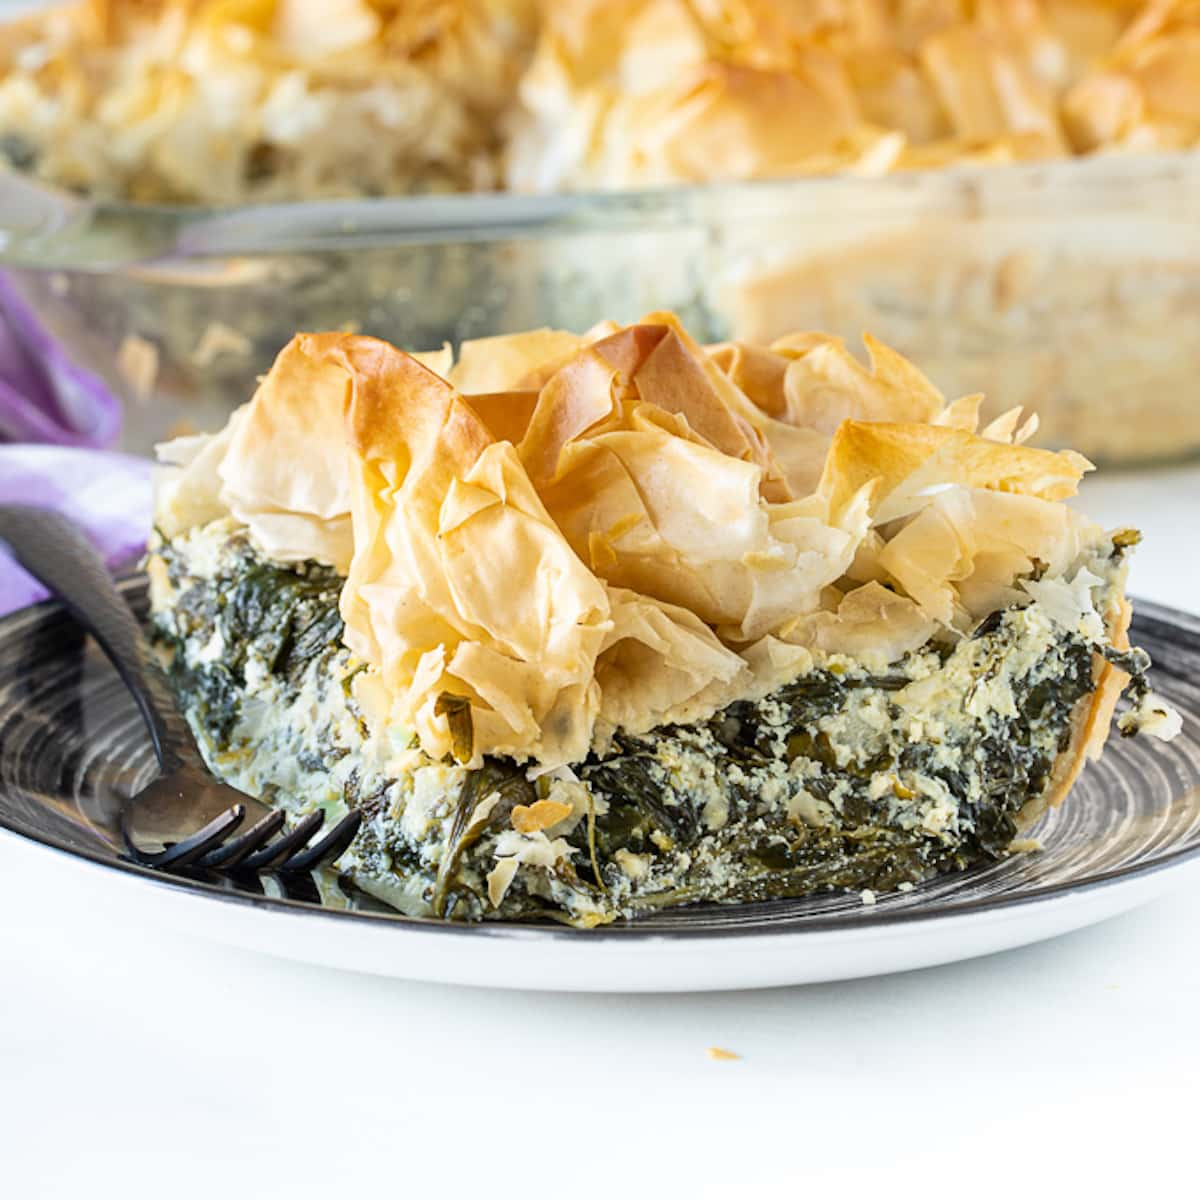 a slice of vegan spanakopita